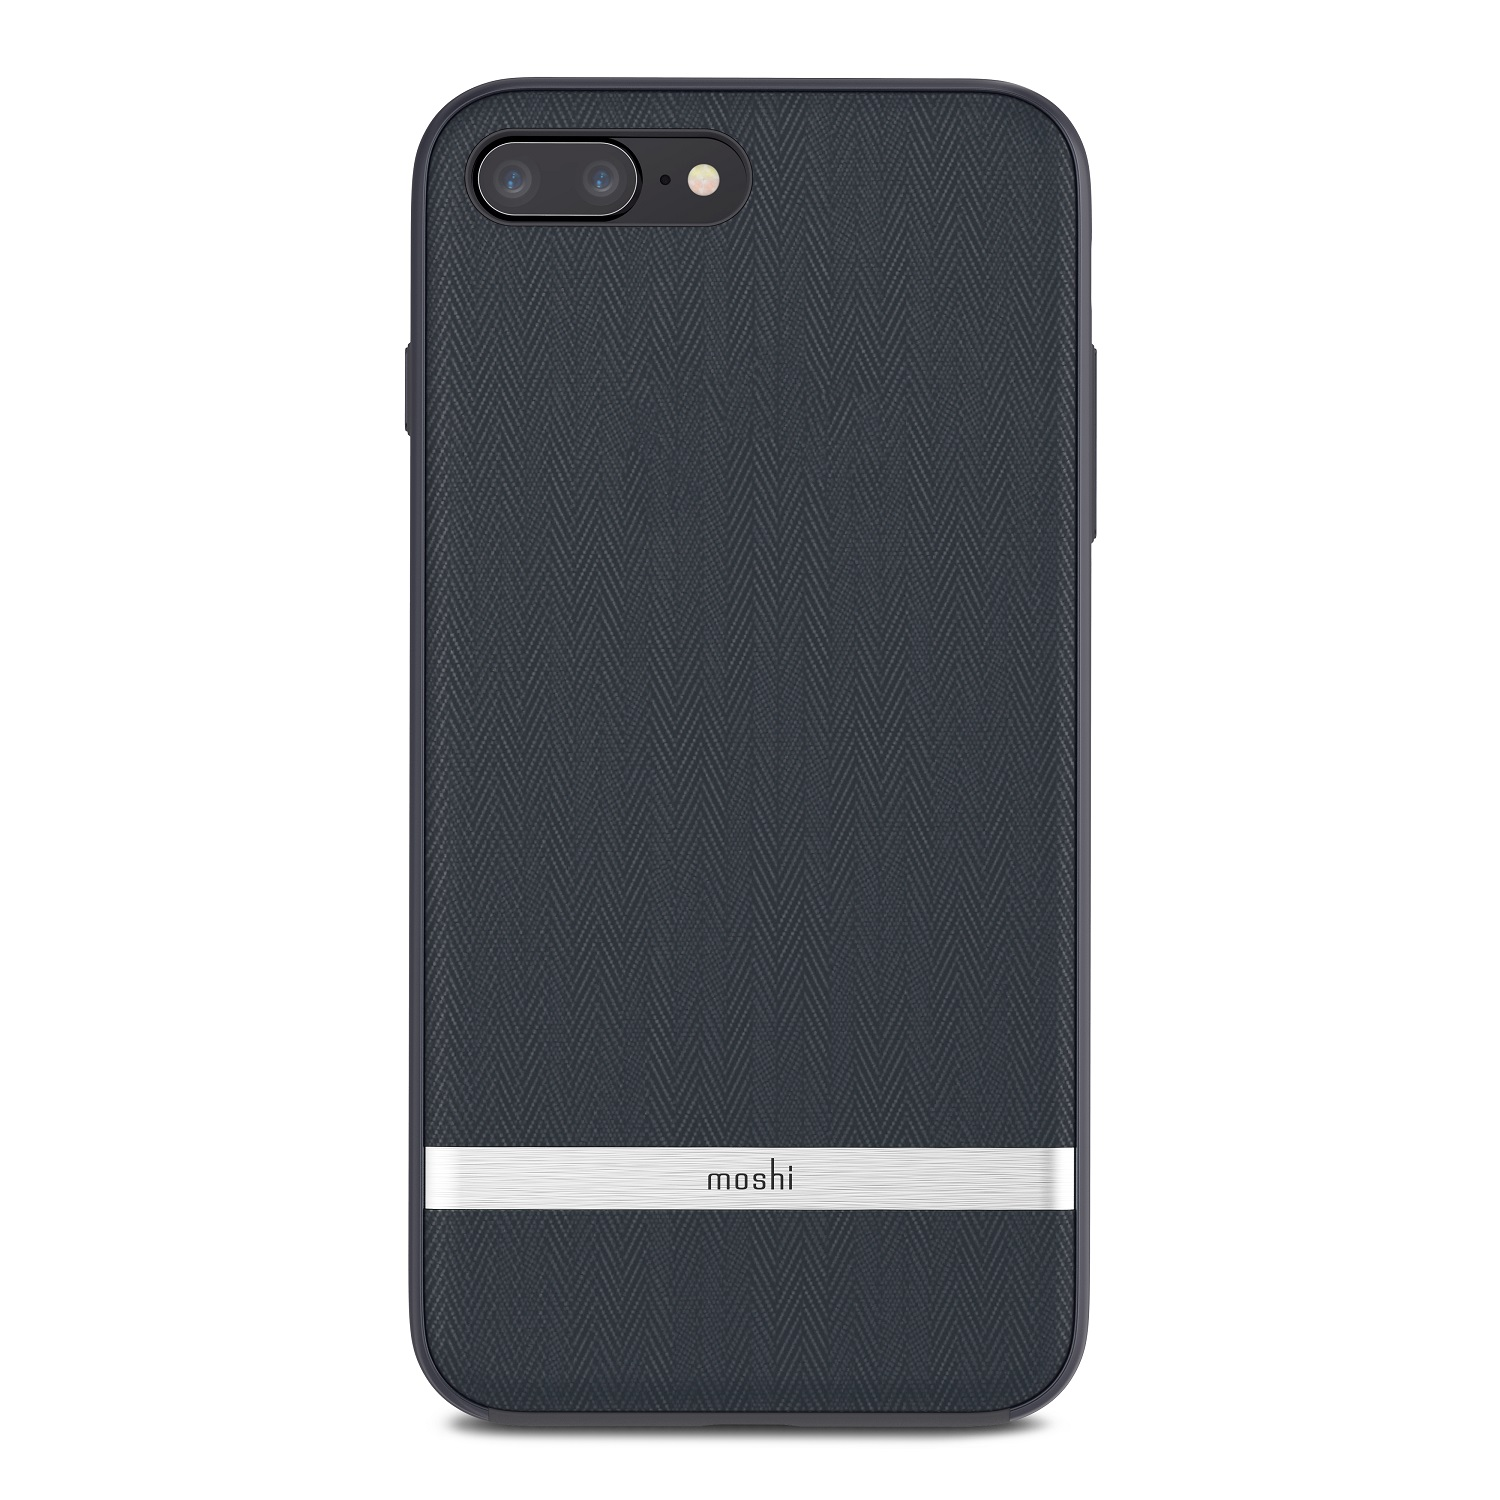 Moshi Vesta Case for iPhone 8 Plus/7 Plus